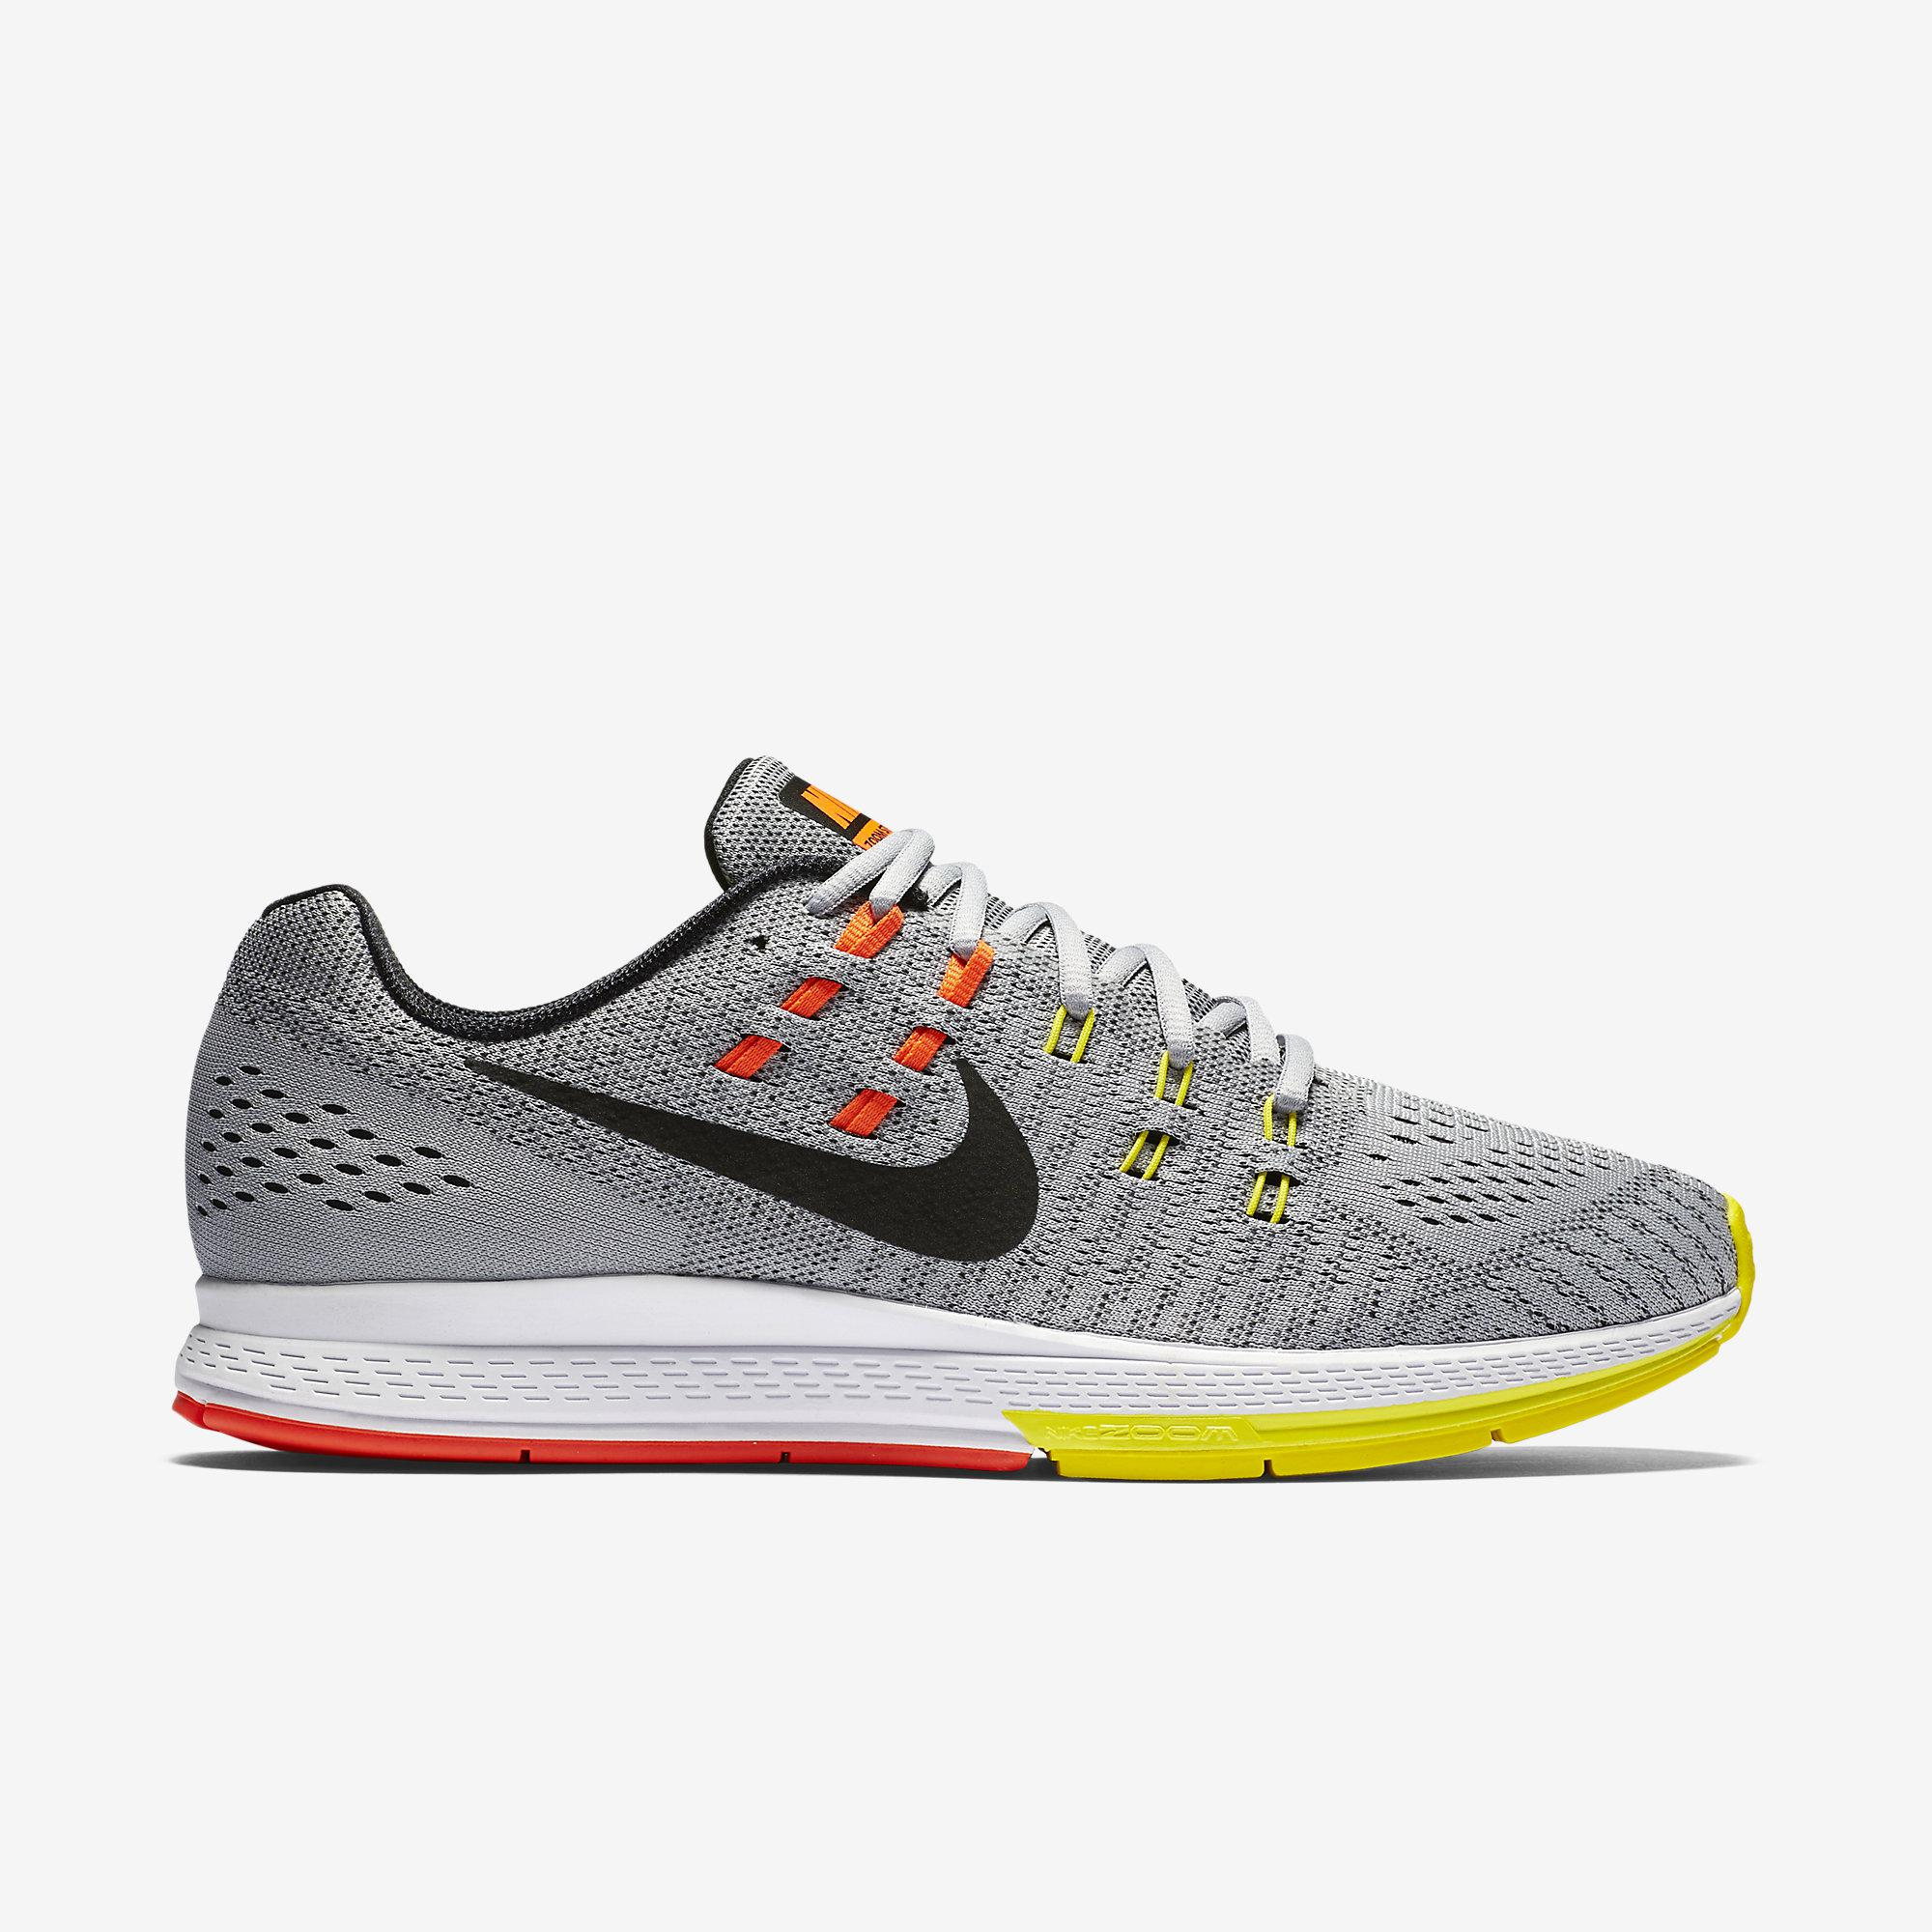 best sneakers 417db 4dbc6 Nike Mens Air Zoom Structure 19 Running Shoes - Grey Yellow - Tennisnuts.com